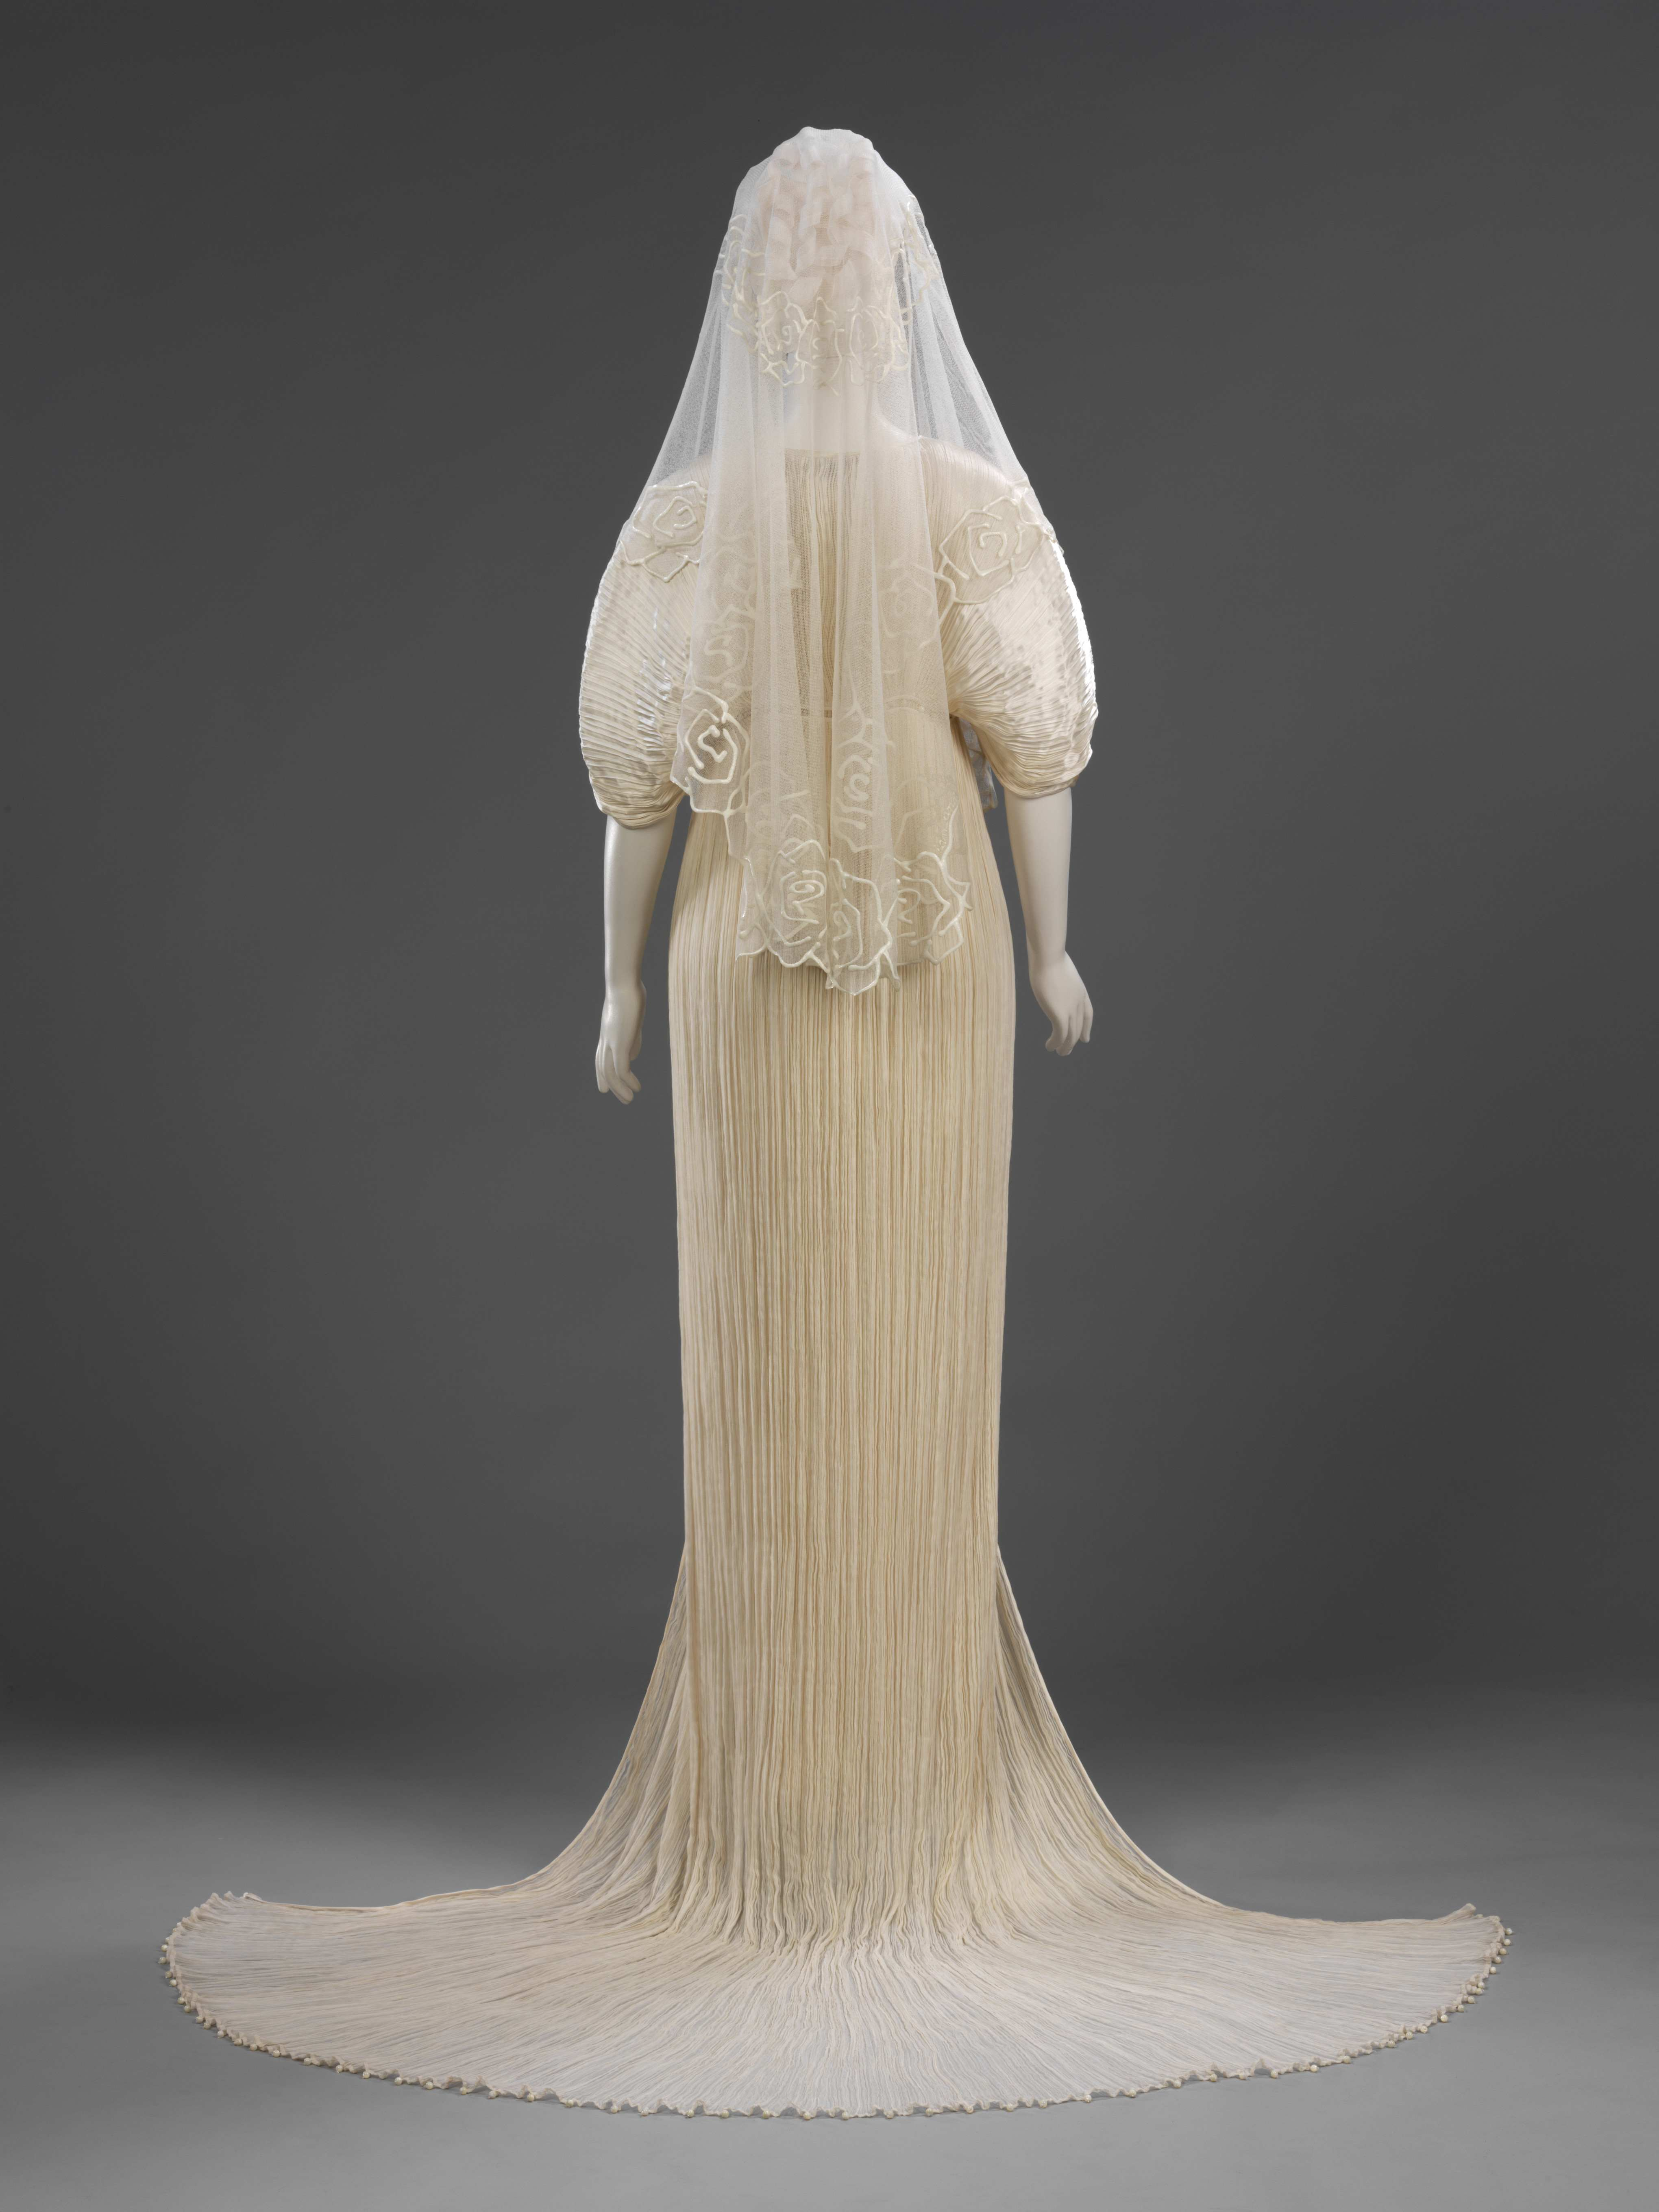 Pleated silk wedding dress and coat, net veil decorated with silicone rubber, by Ian and Marcel, London, 1989. Bequeathed by Ian and Marcel